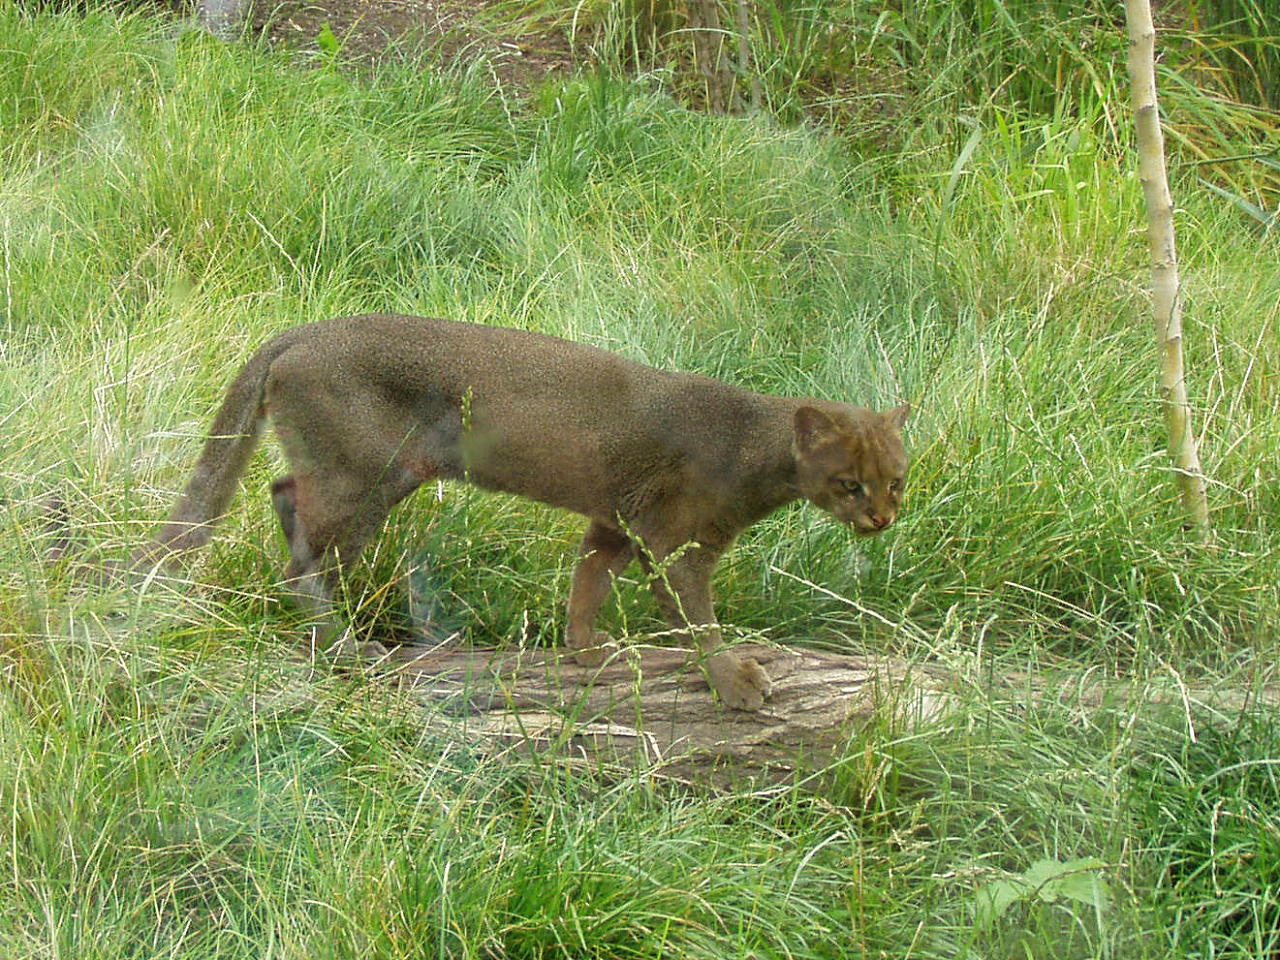 http://upload.wikimedia.org/wikipedia/commons/5/56/Puma_yaguarondi.jpg